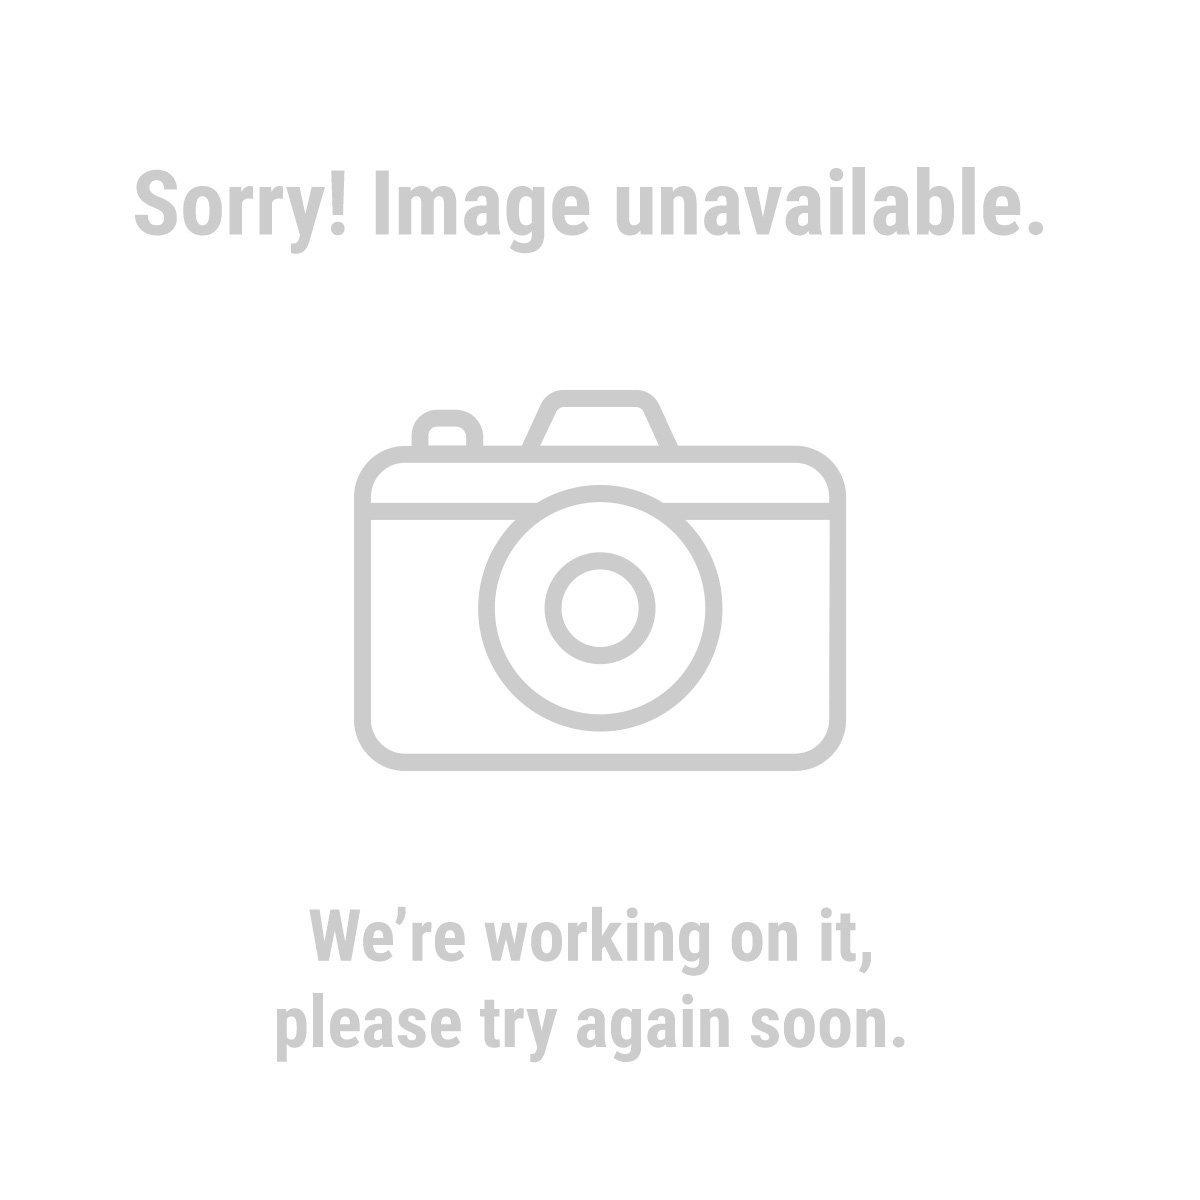 1 5 ton aluminum racing floor jack with rapid pump